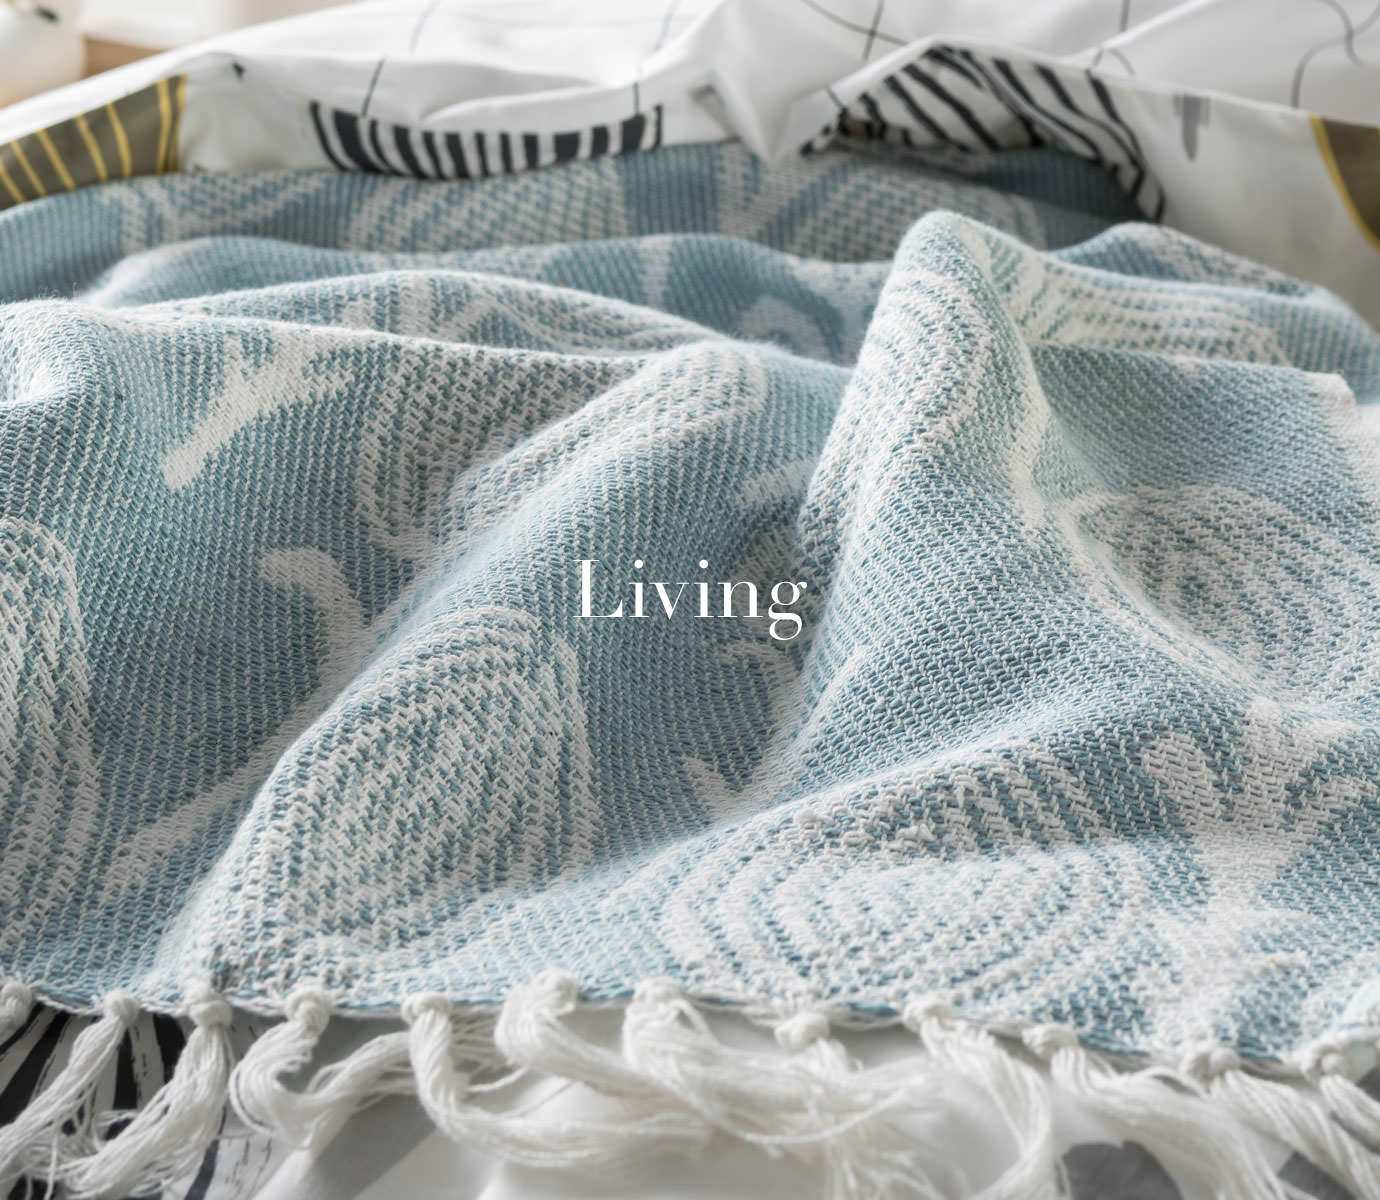 Bedding and Linen Sale | Linen House Singapore